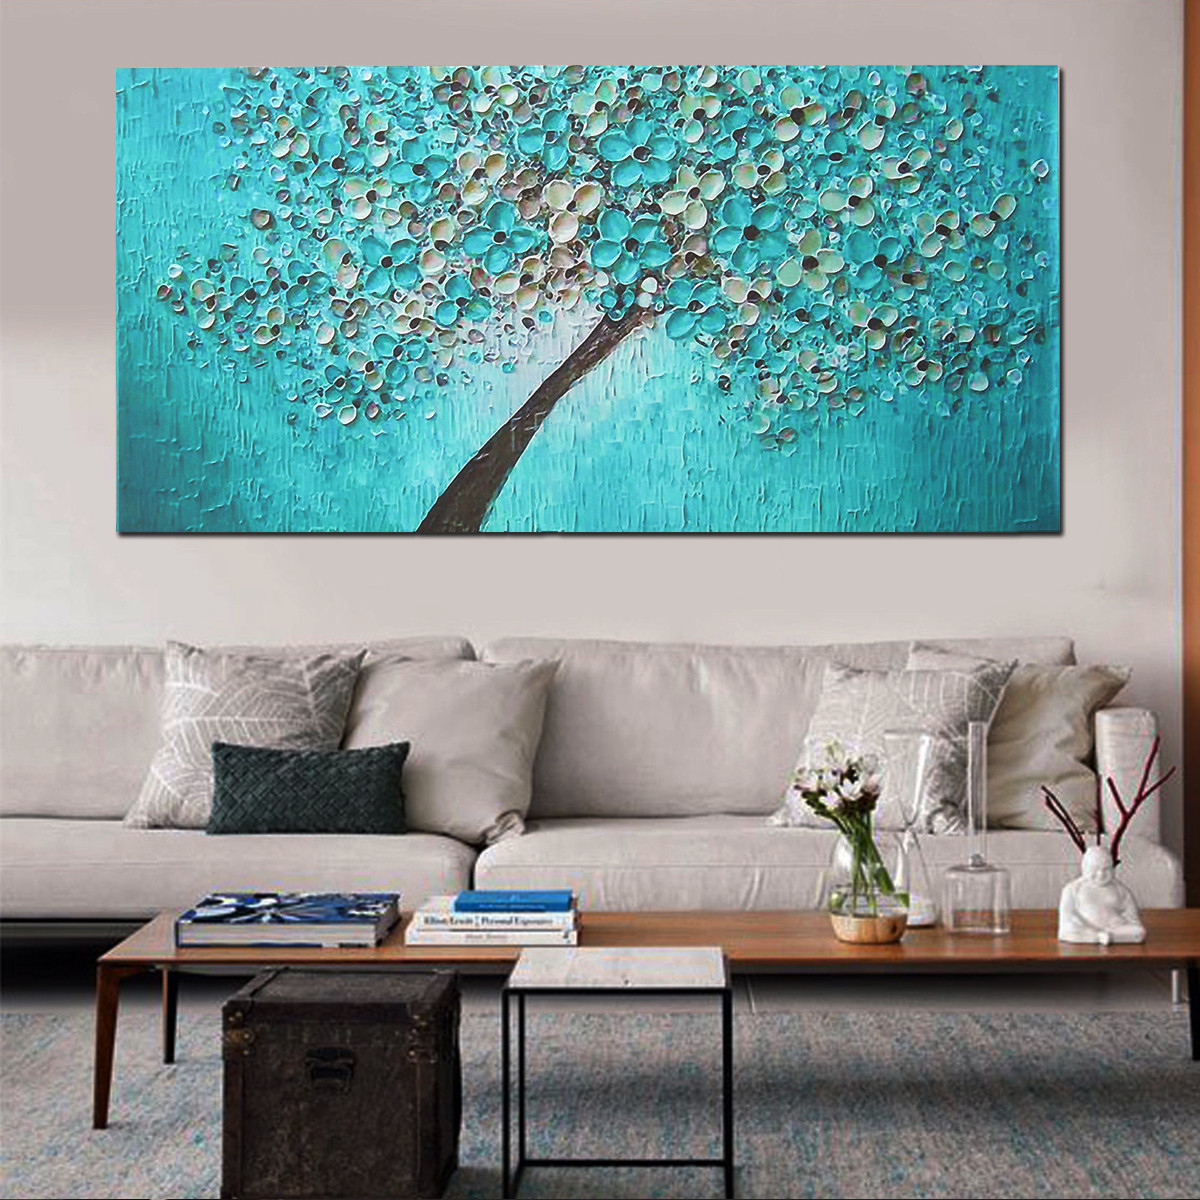 5 kinds of unframed print canvas painting picture shop office home bedroom wall art decor